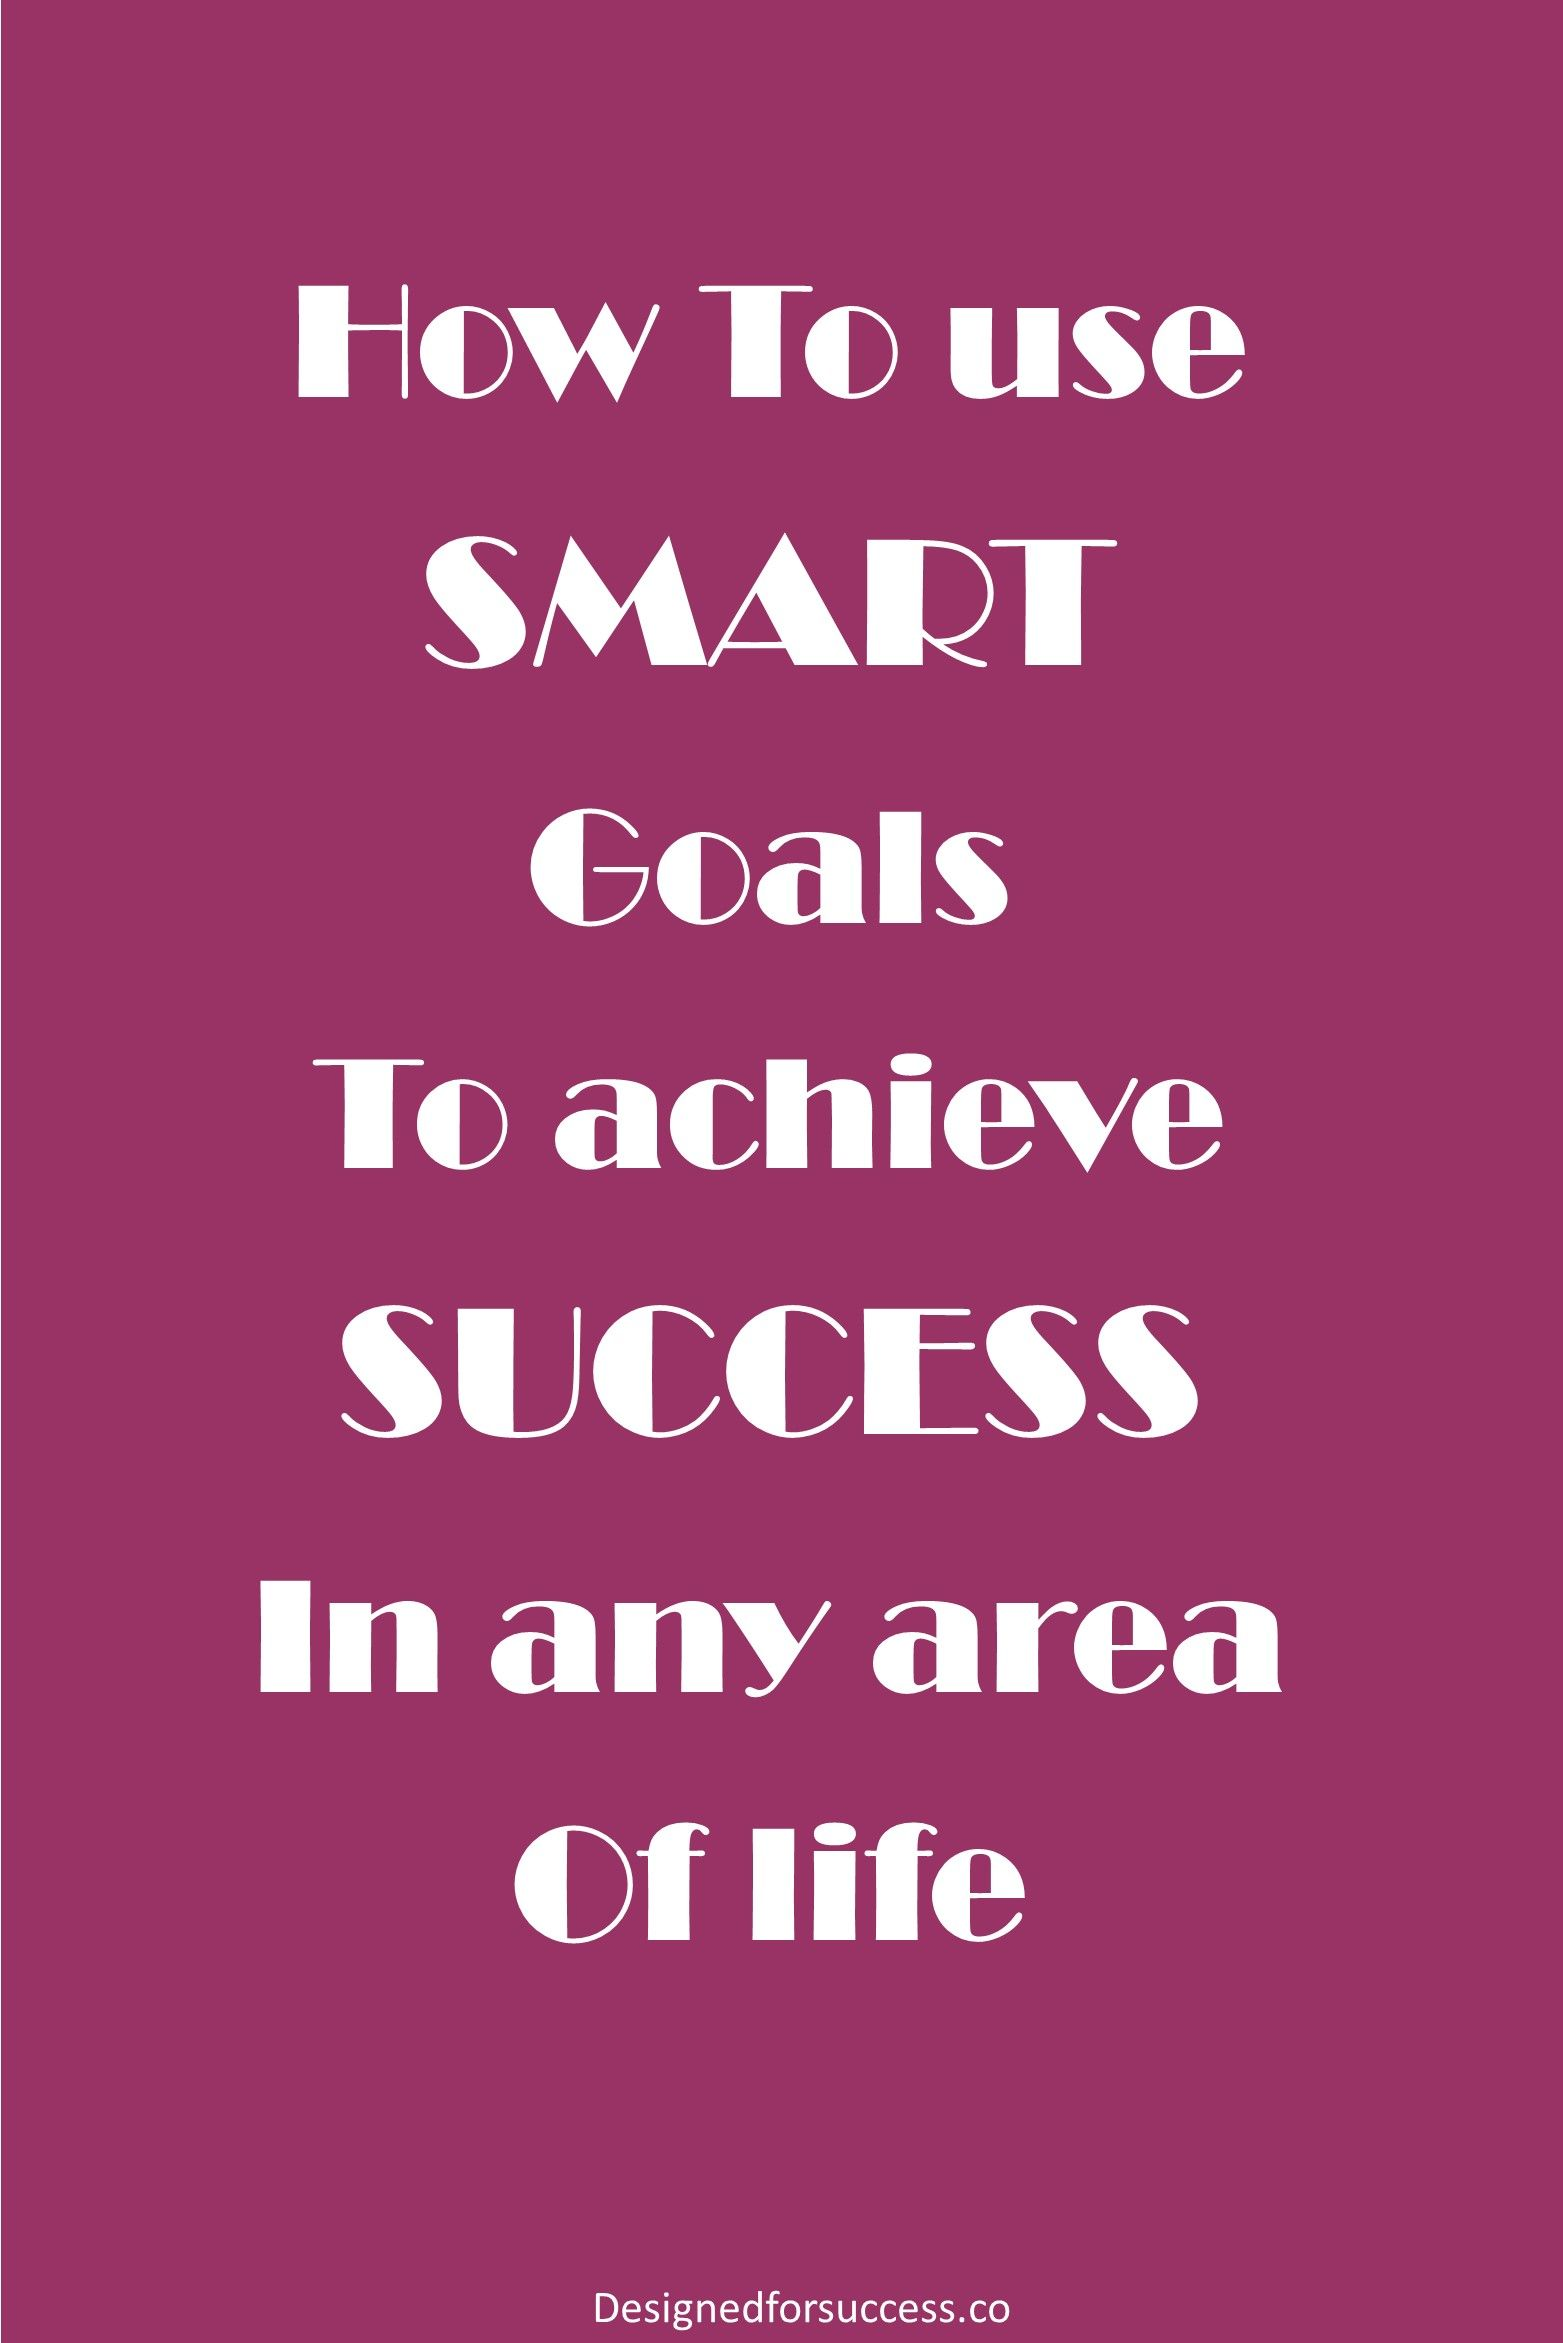 How To Use Smart Goals To Achieve Success In Any Area Of